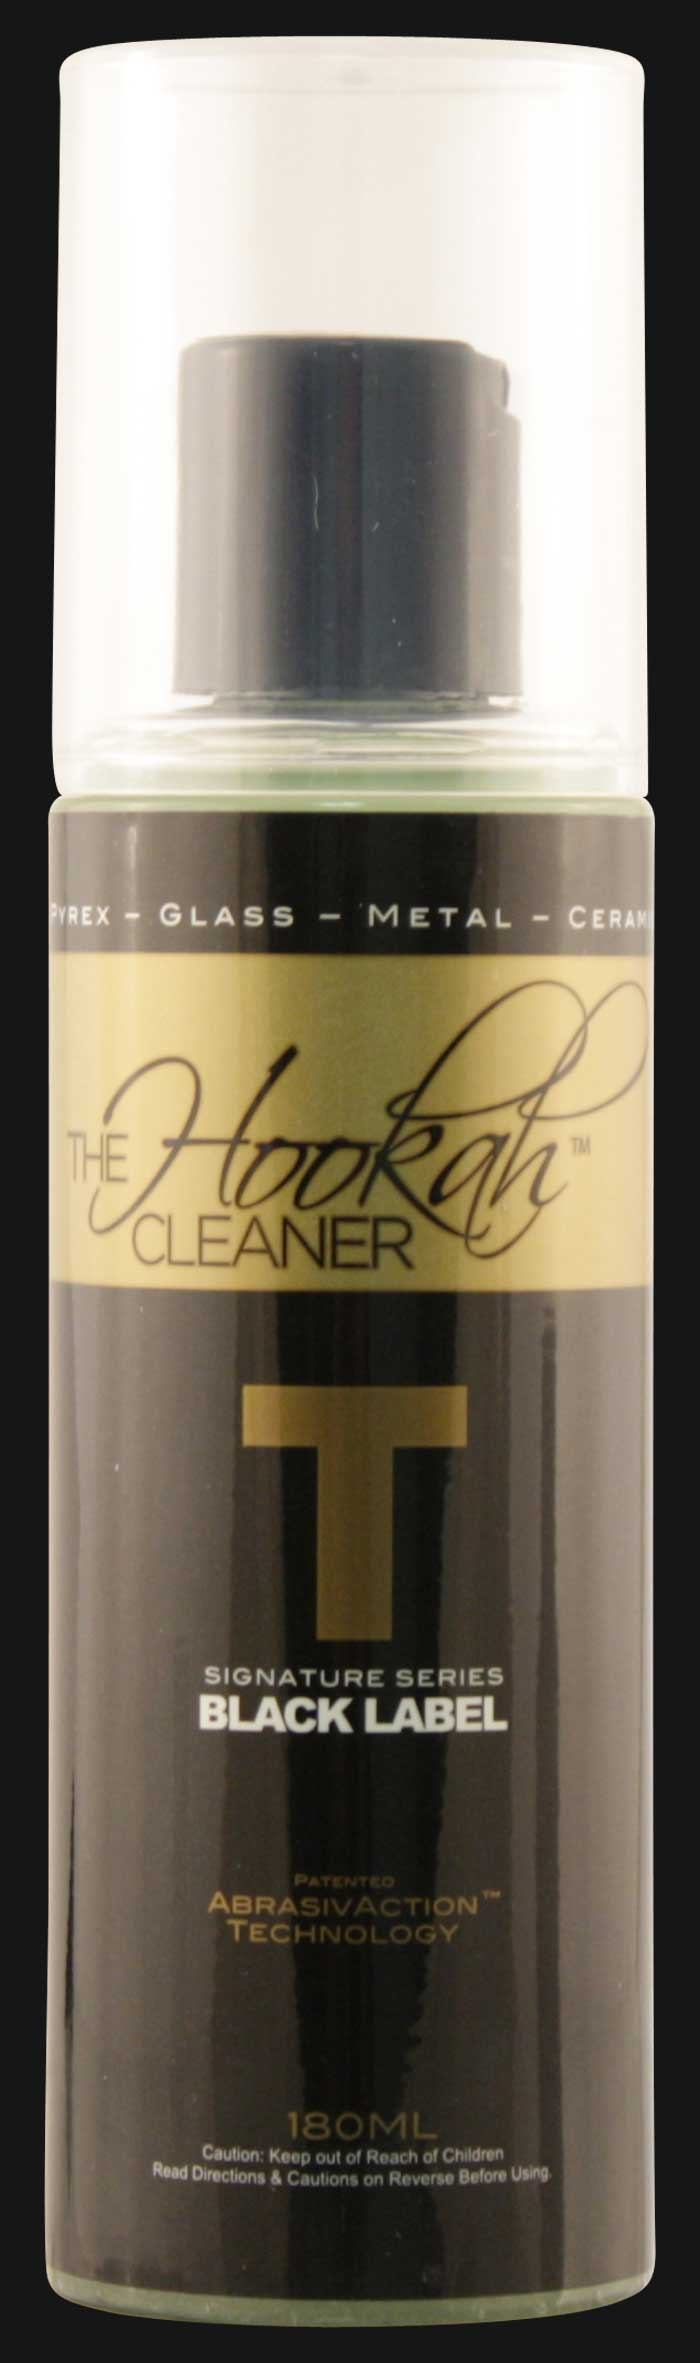 The Hookah Cleaner - Black Label T Pipe Cleaner 180 ML.